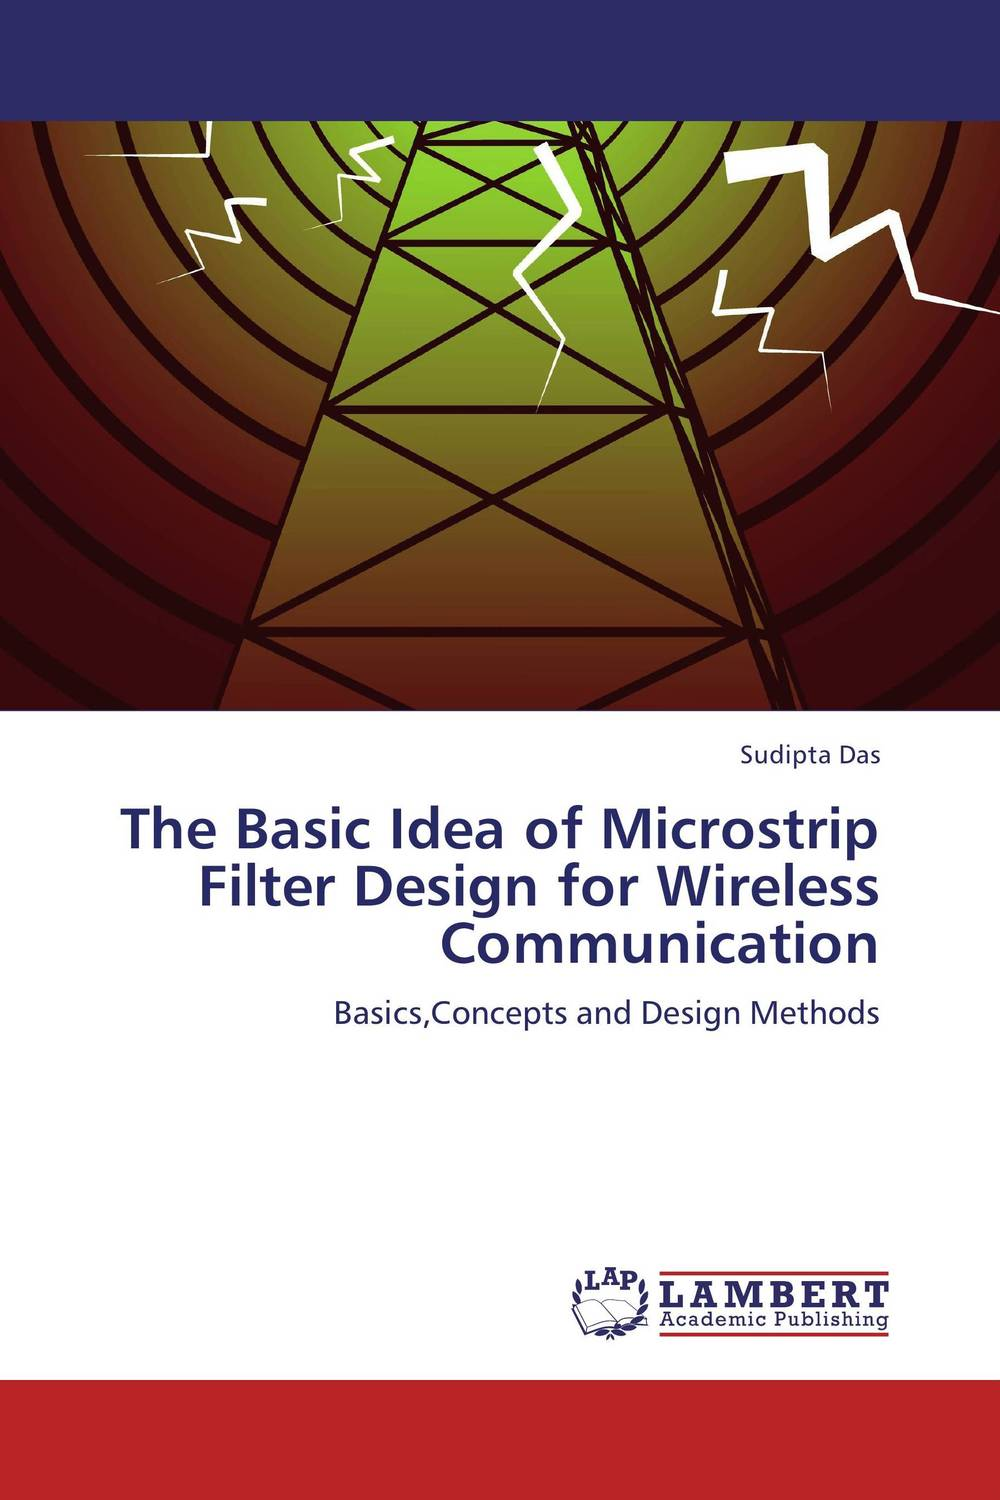 The Basic Idea of Microstrip Filter Design for Wireless Communication design of microstrip antenna in wireless communication